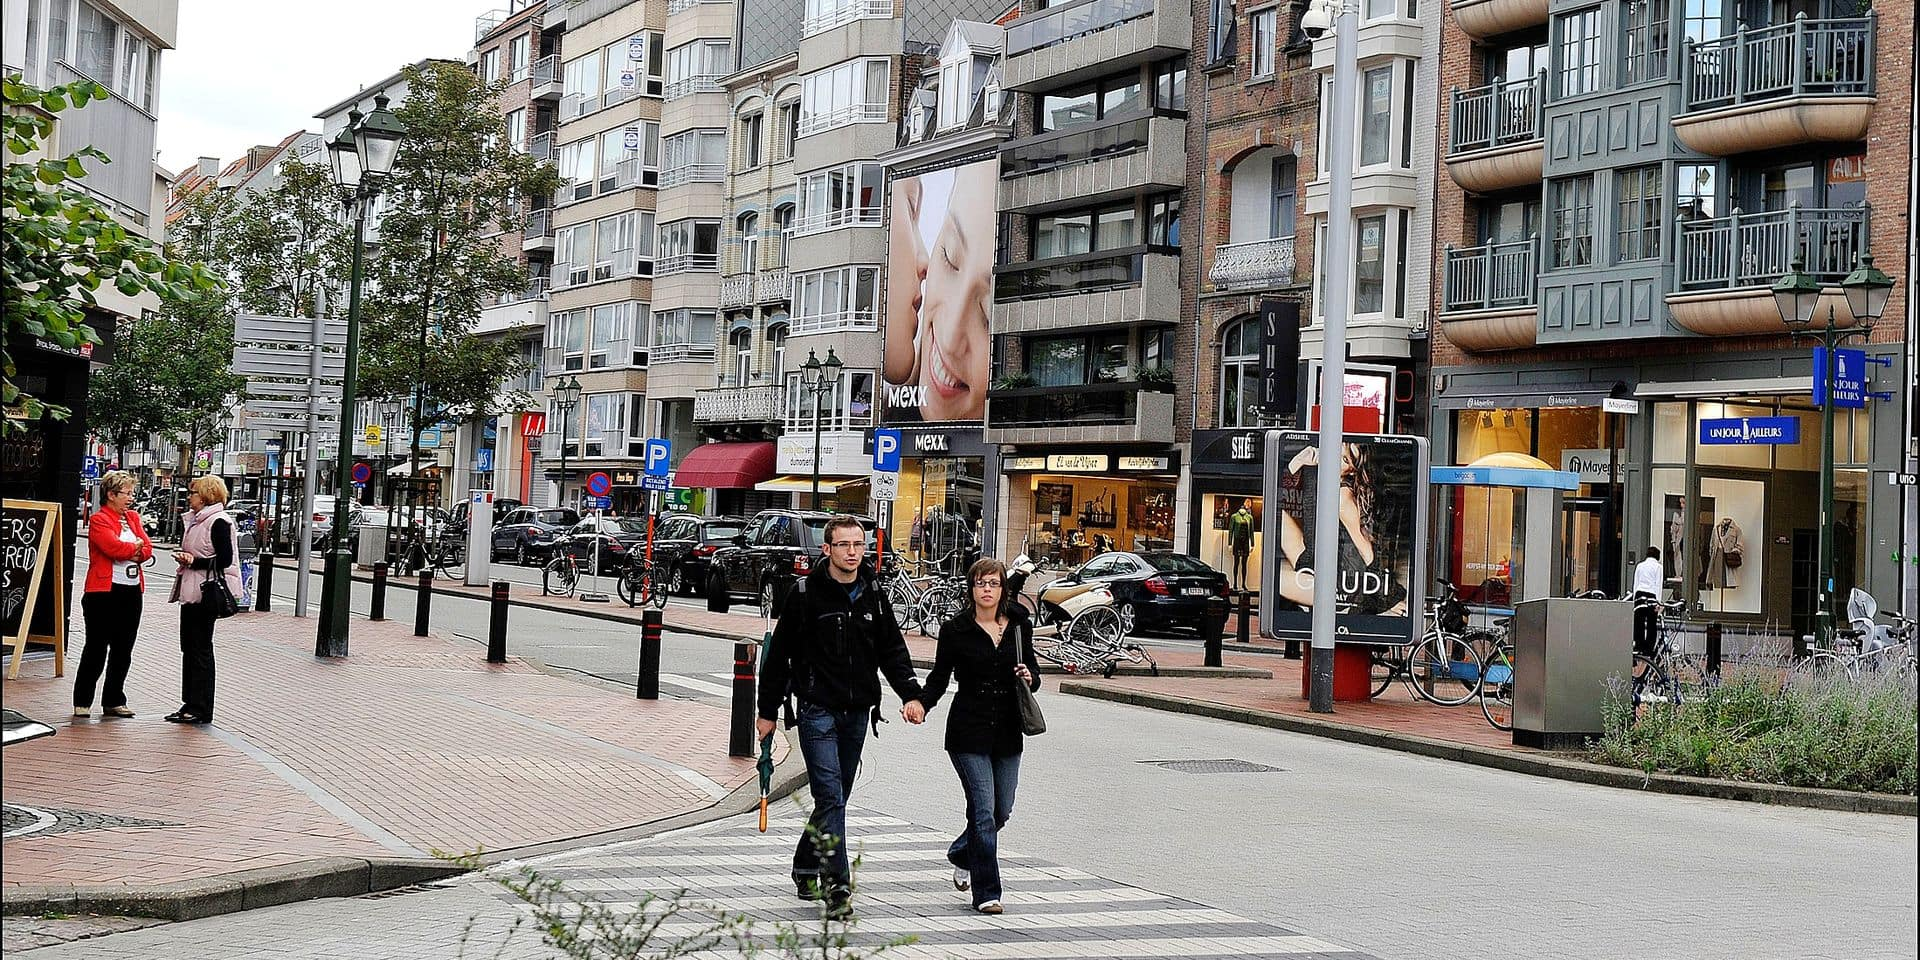 PICTURES : winkelstraten Knokke Lippenslaan PICTURES NOT INCLUDED IN THE CONTRACTS